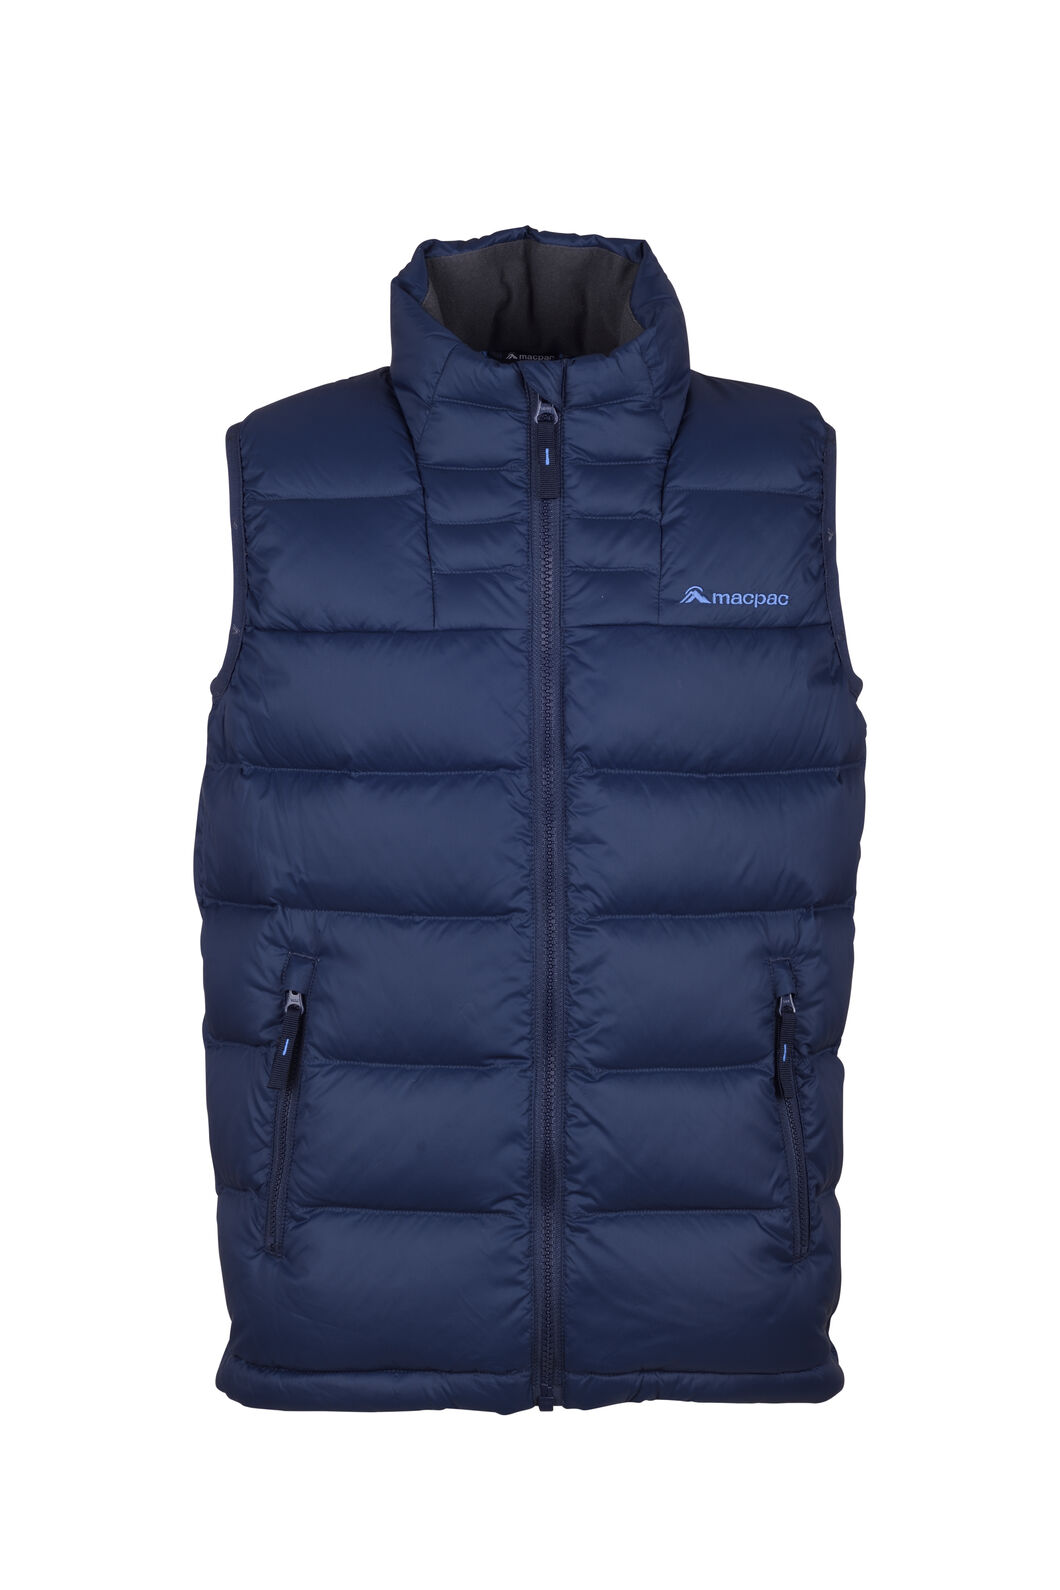 Macpac Atom Down Vest - Kids', Black Iris, hi-res